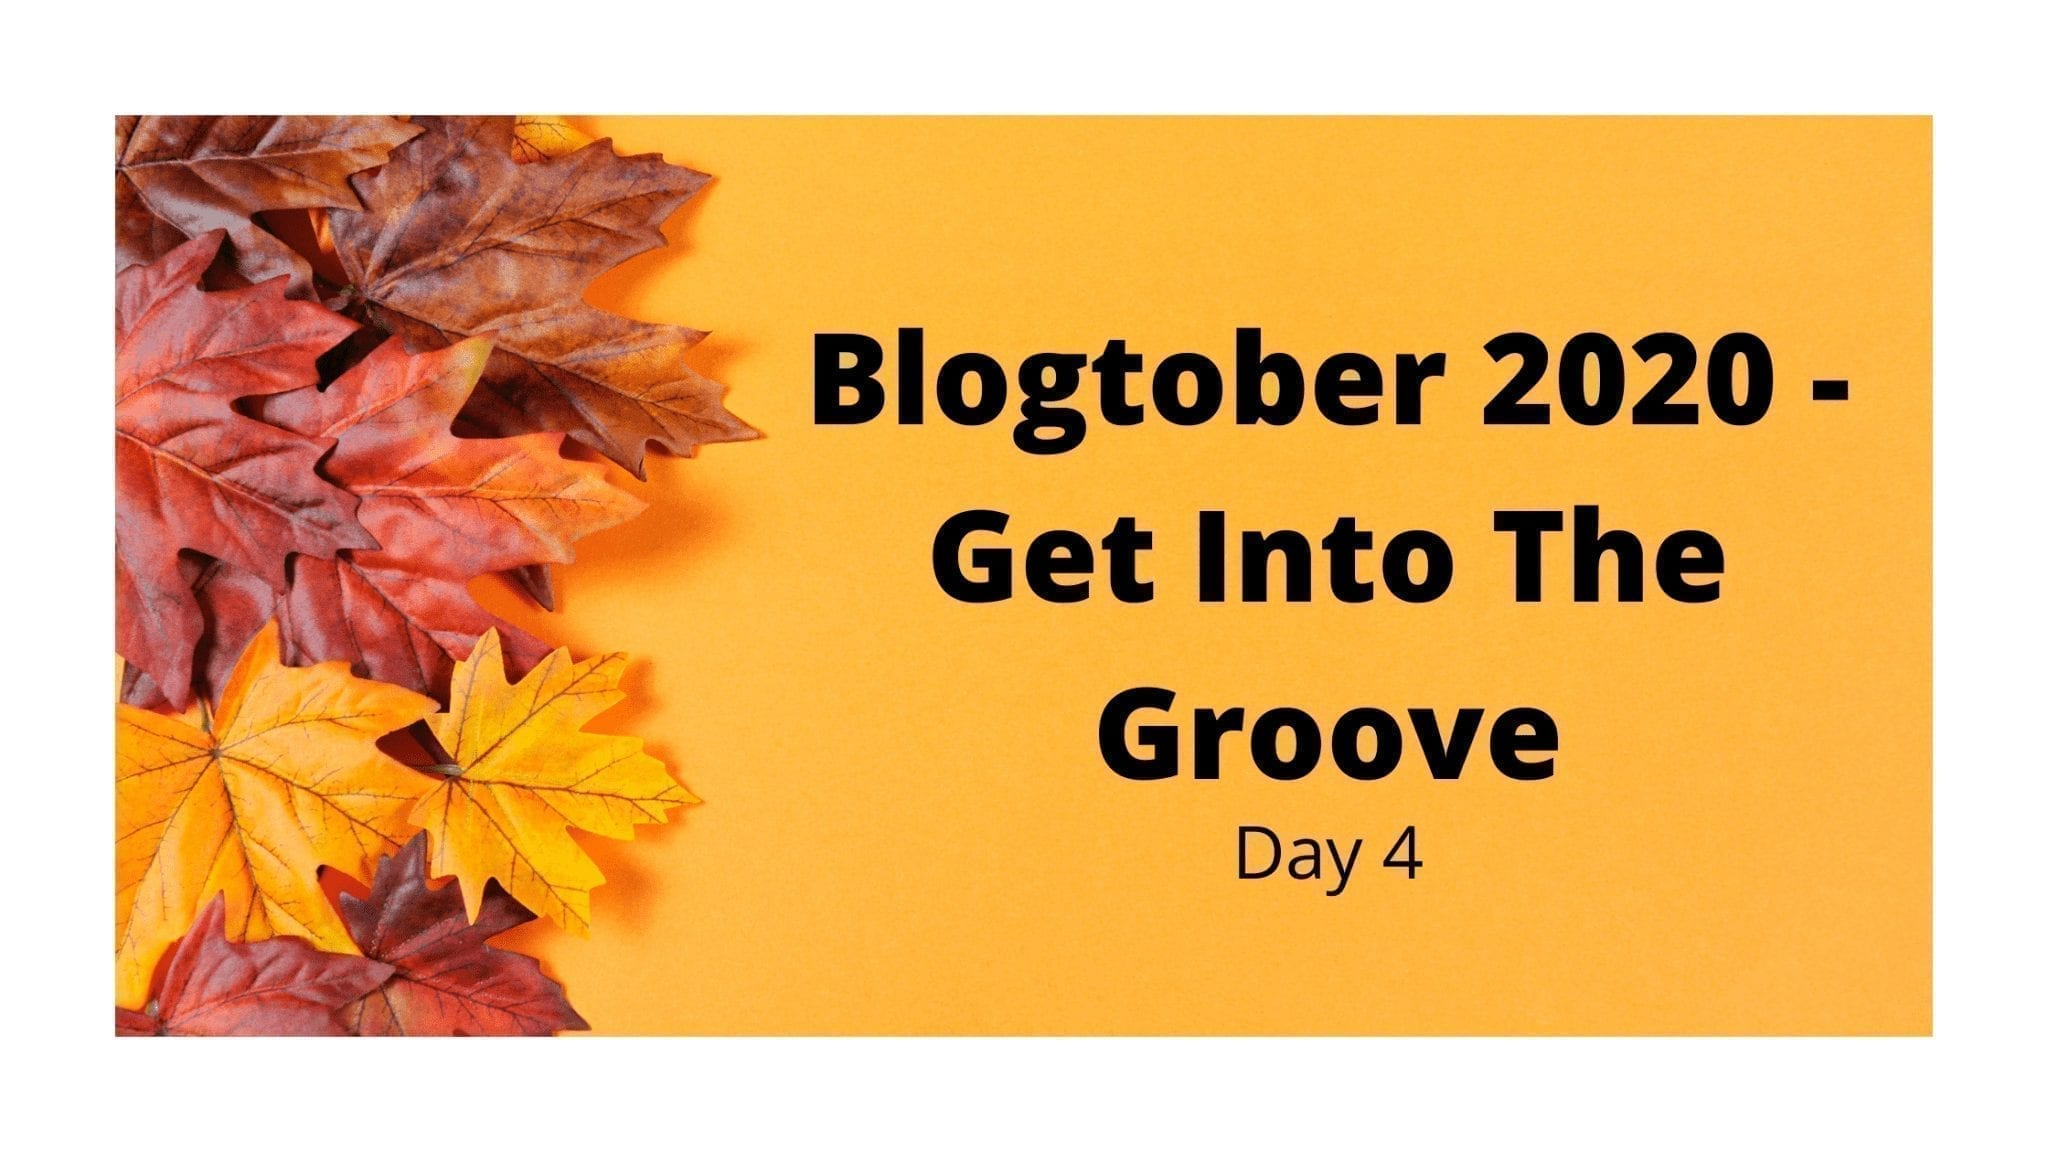 Blogtober 2020 - Get Into The Groove